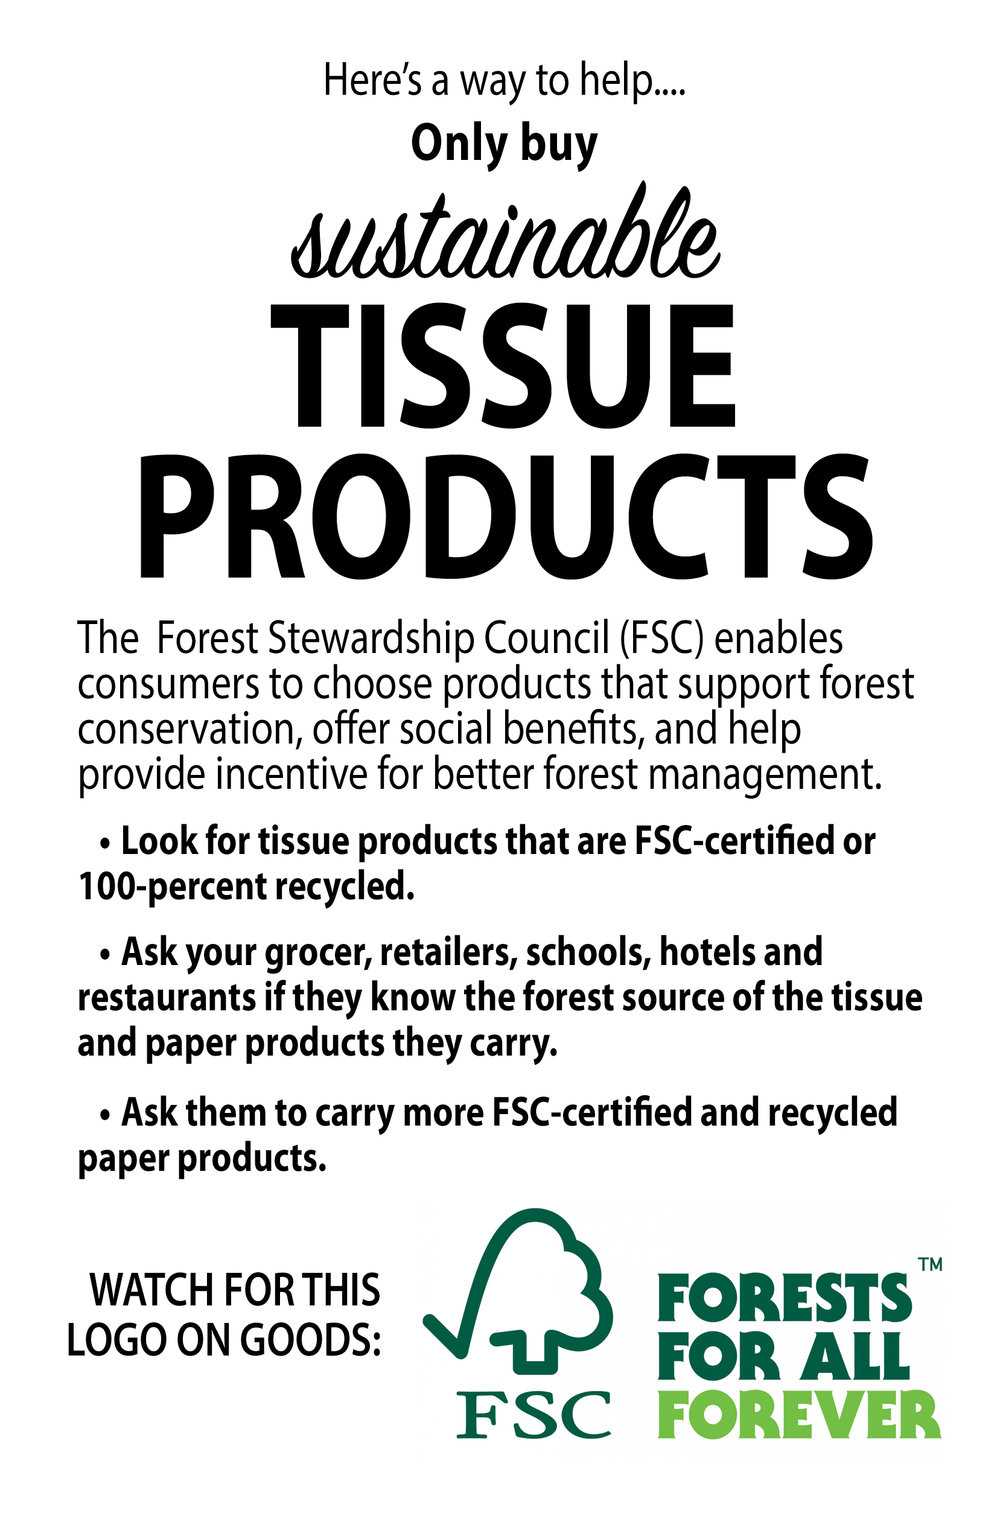 Use sustainable tissue.jpg